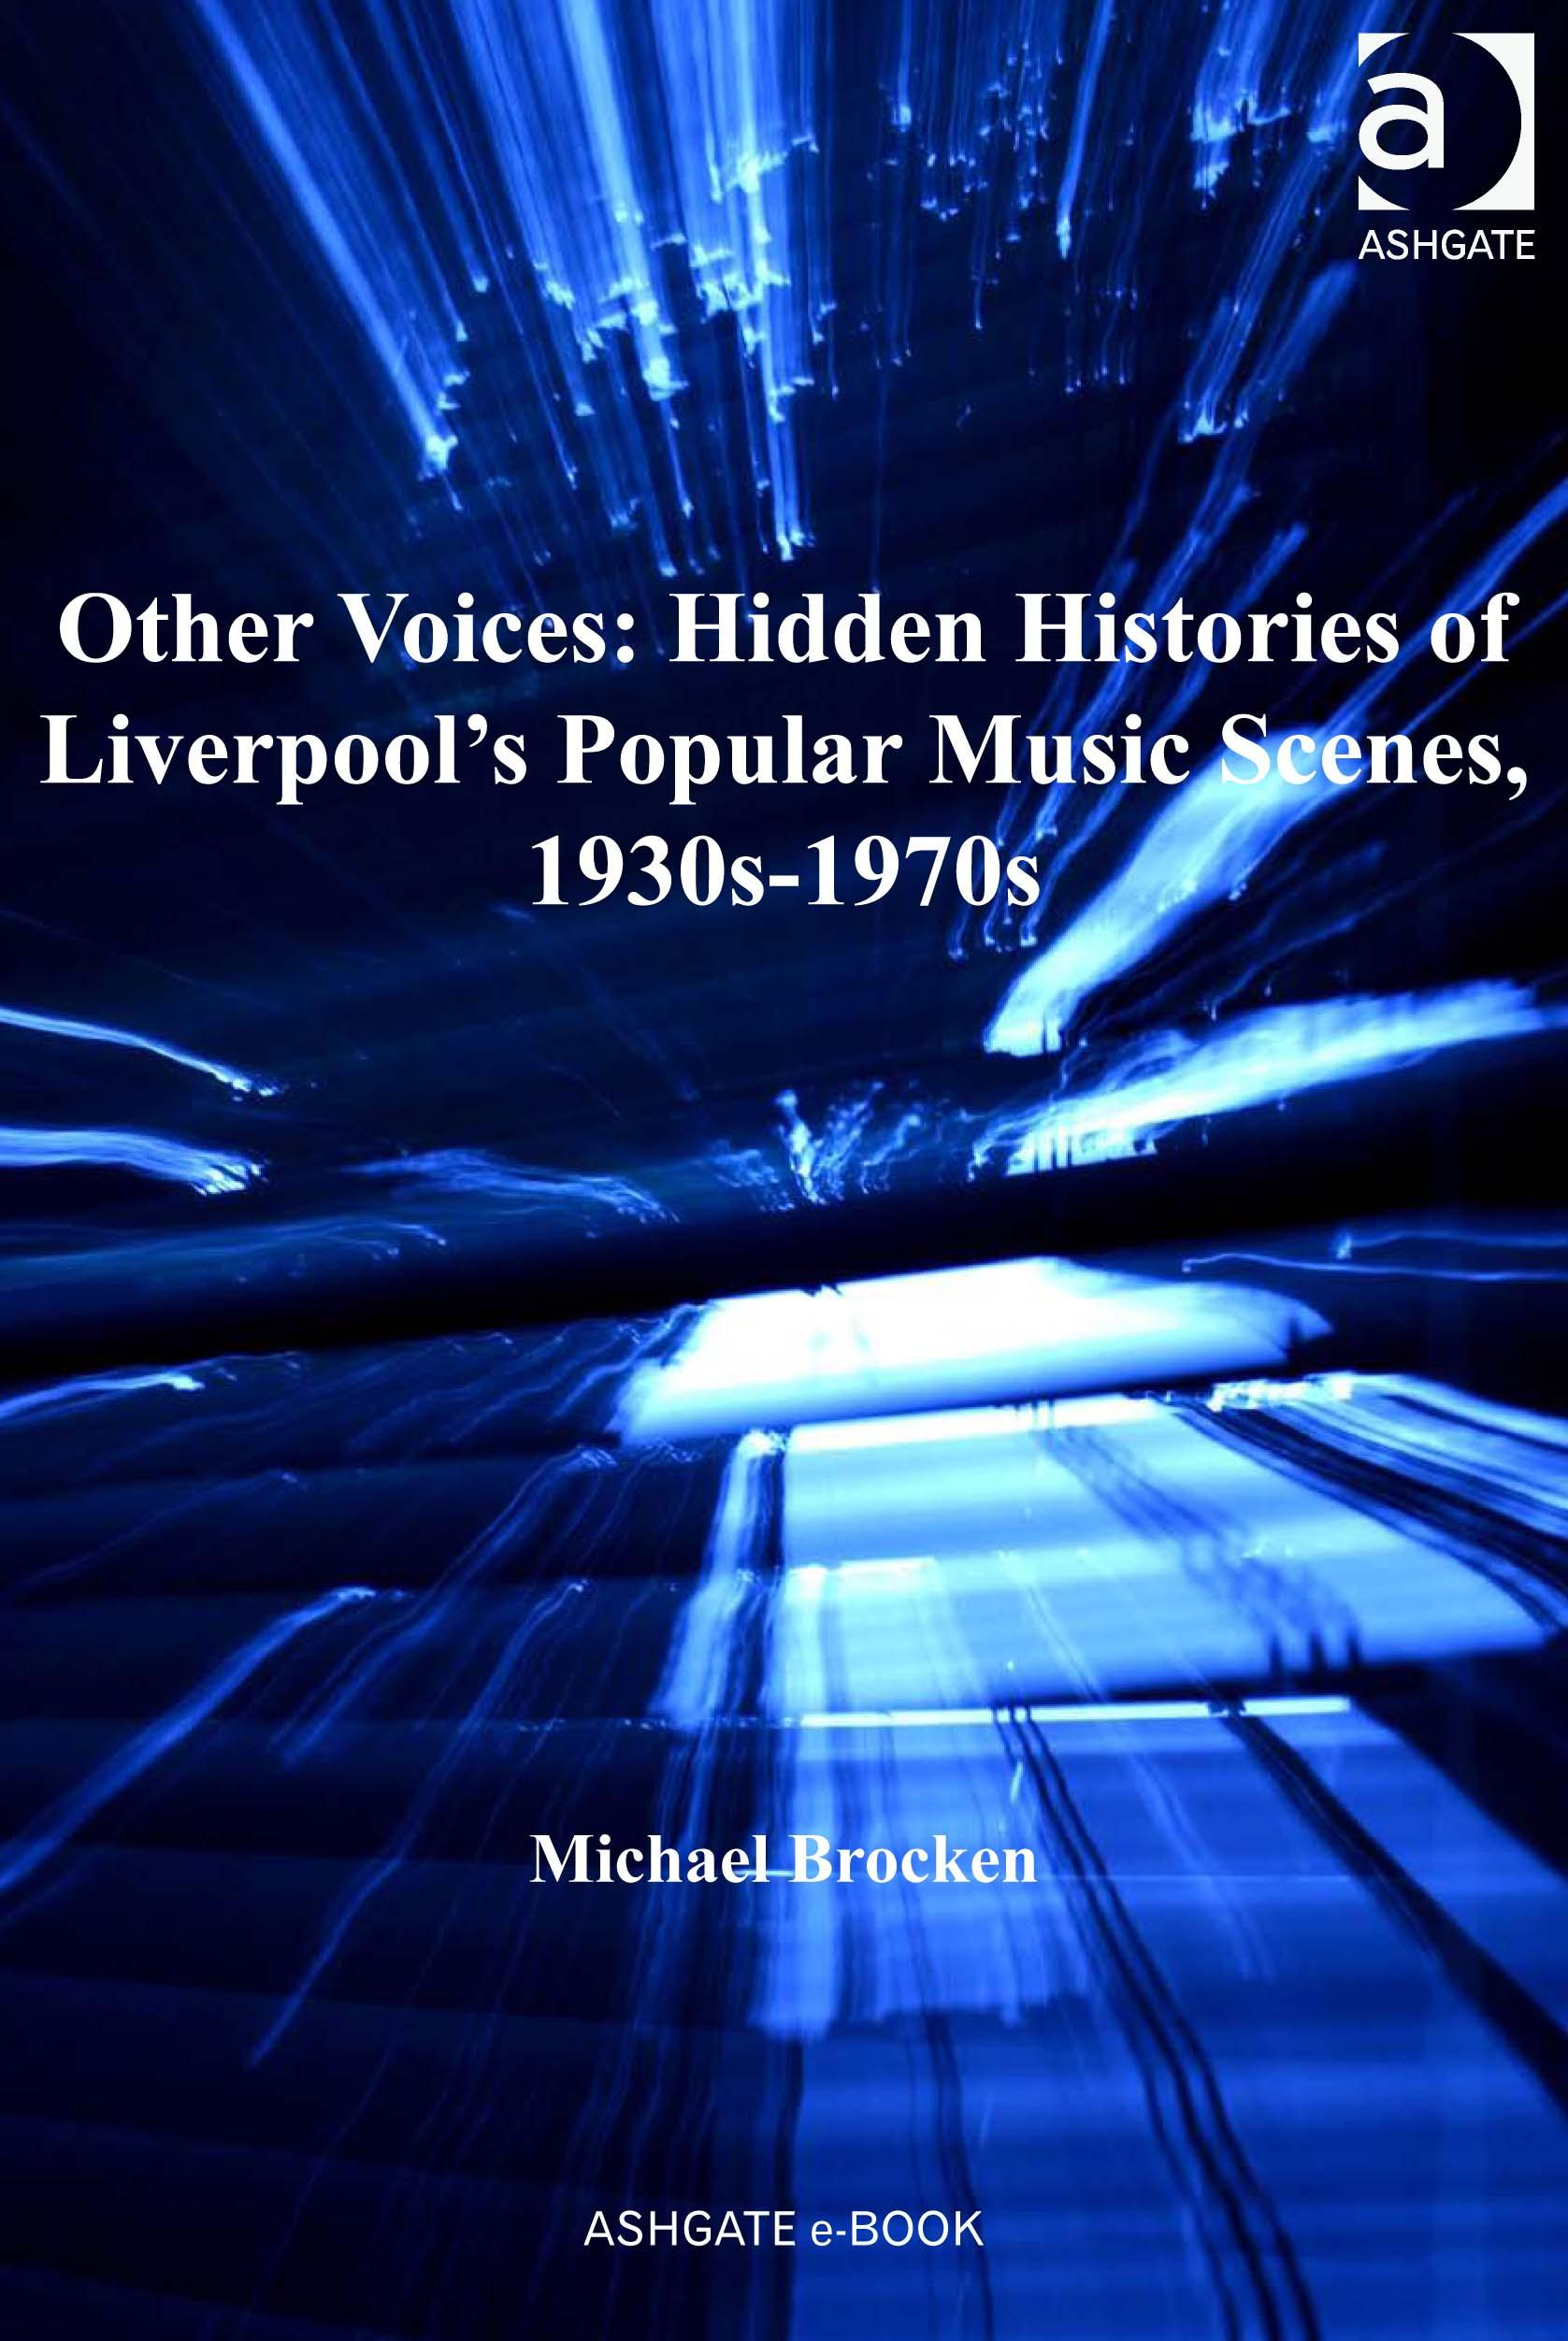 Other Voices: Hidden Histories of Liverpool's Popular Music Scenes, 1930s-1970s EB9780754699170